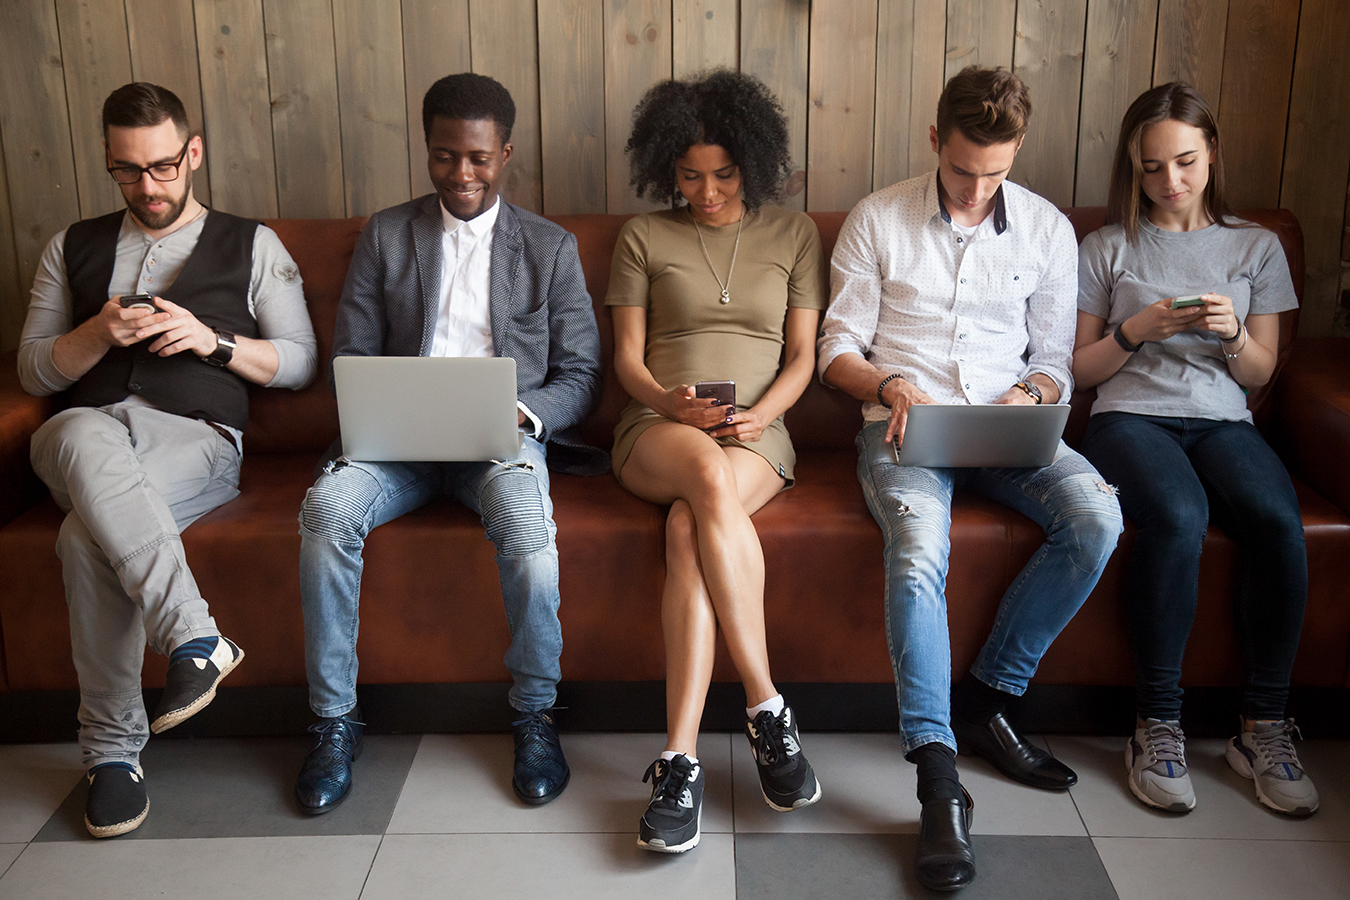 These are the 4 main ways Gen Z sets themselves apart from Millennials